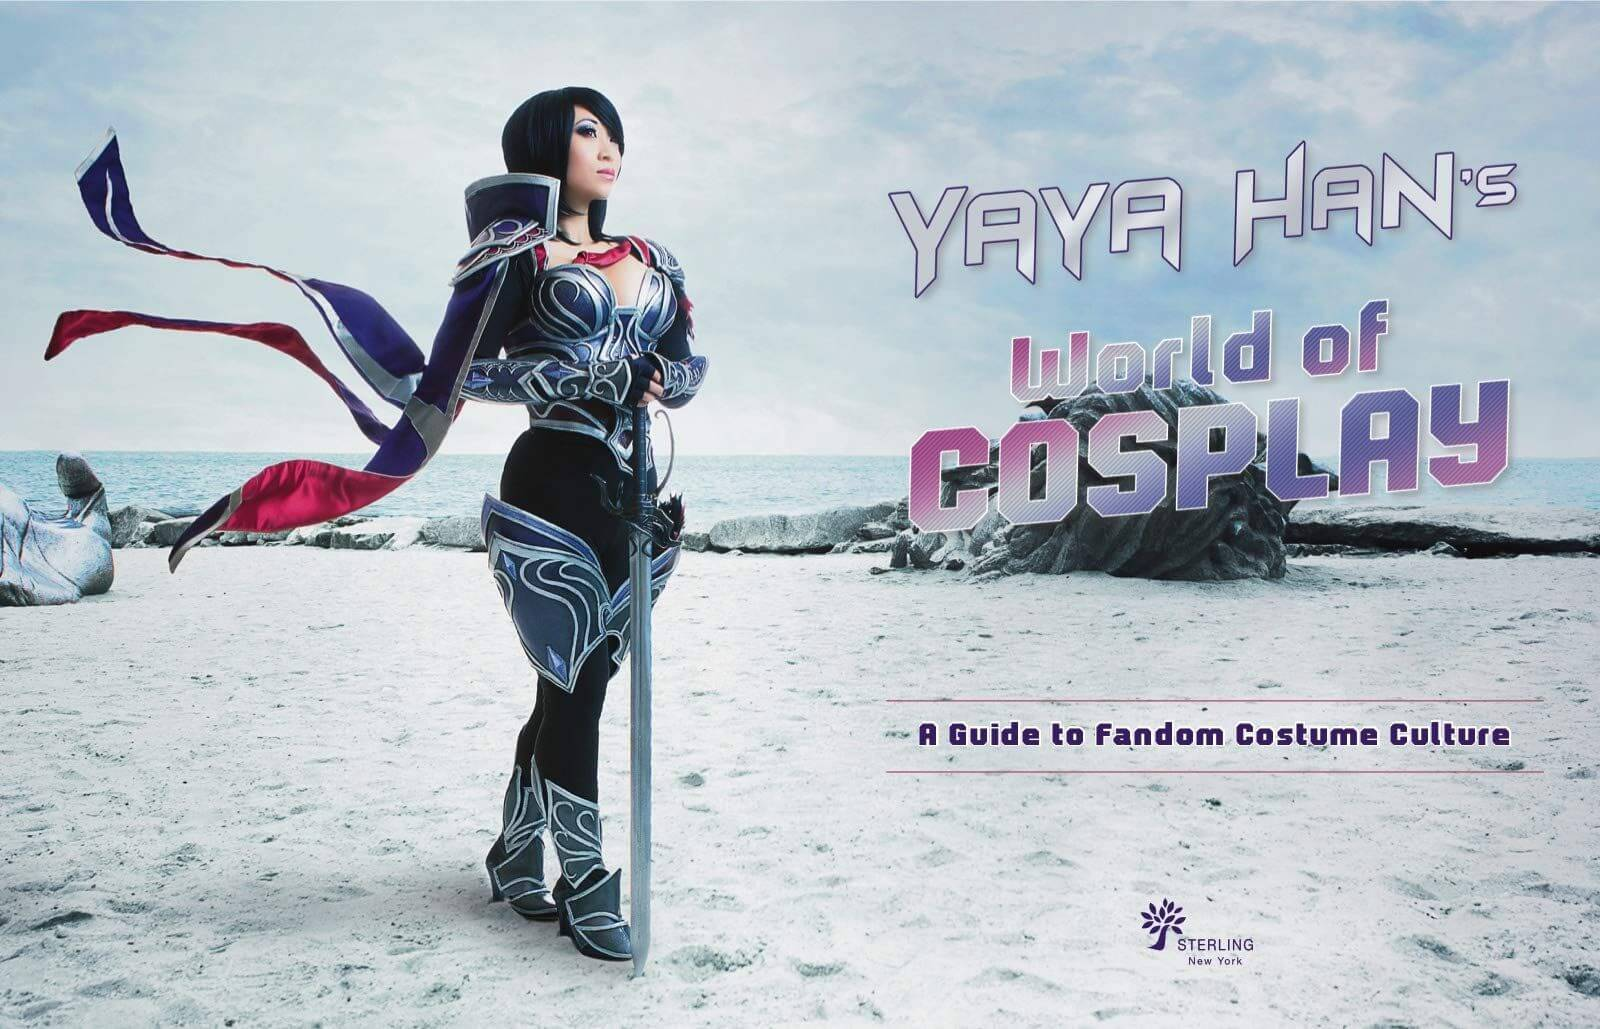 Yaya Han on a beach wearing black and silver armour in a promo image for Yaya Han's World of Cosplay